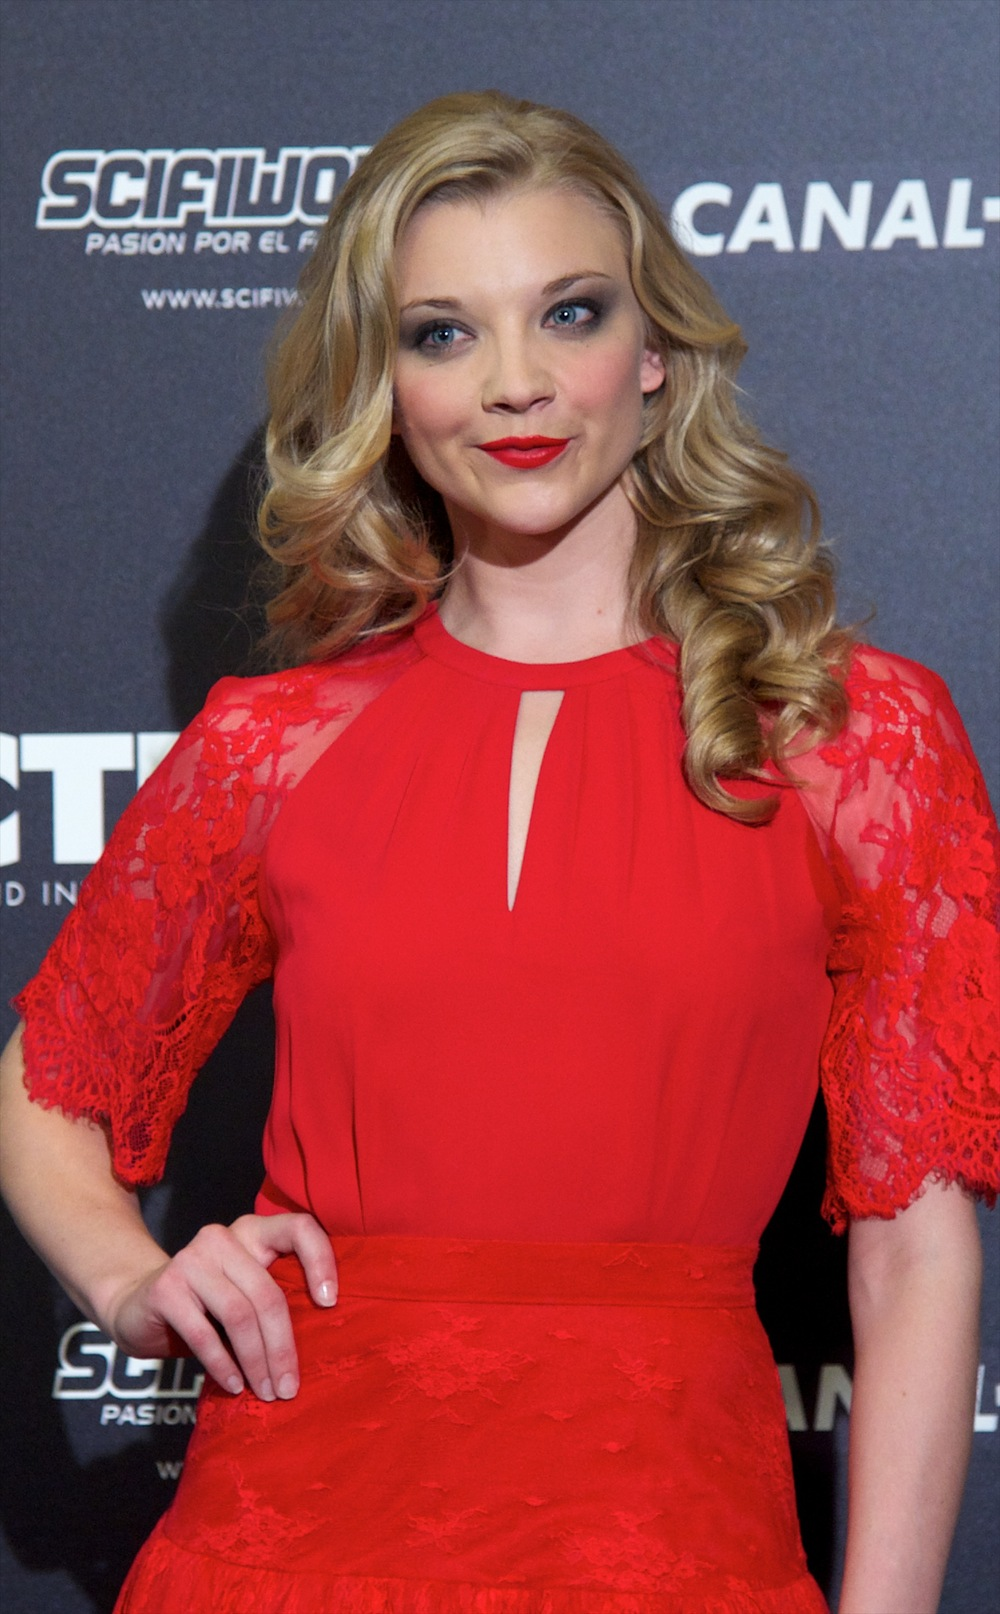 Game of Thrones' Natalie Dormer Returning to Elementary